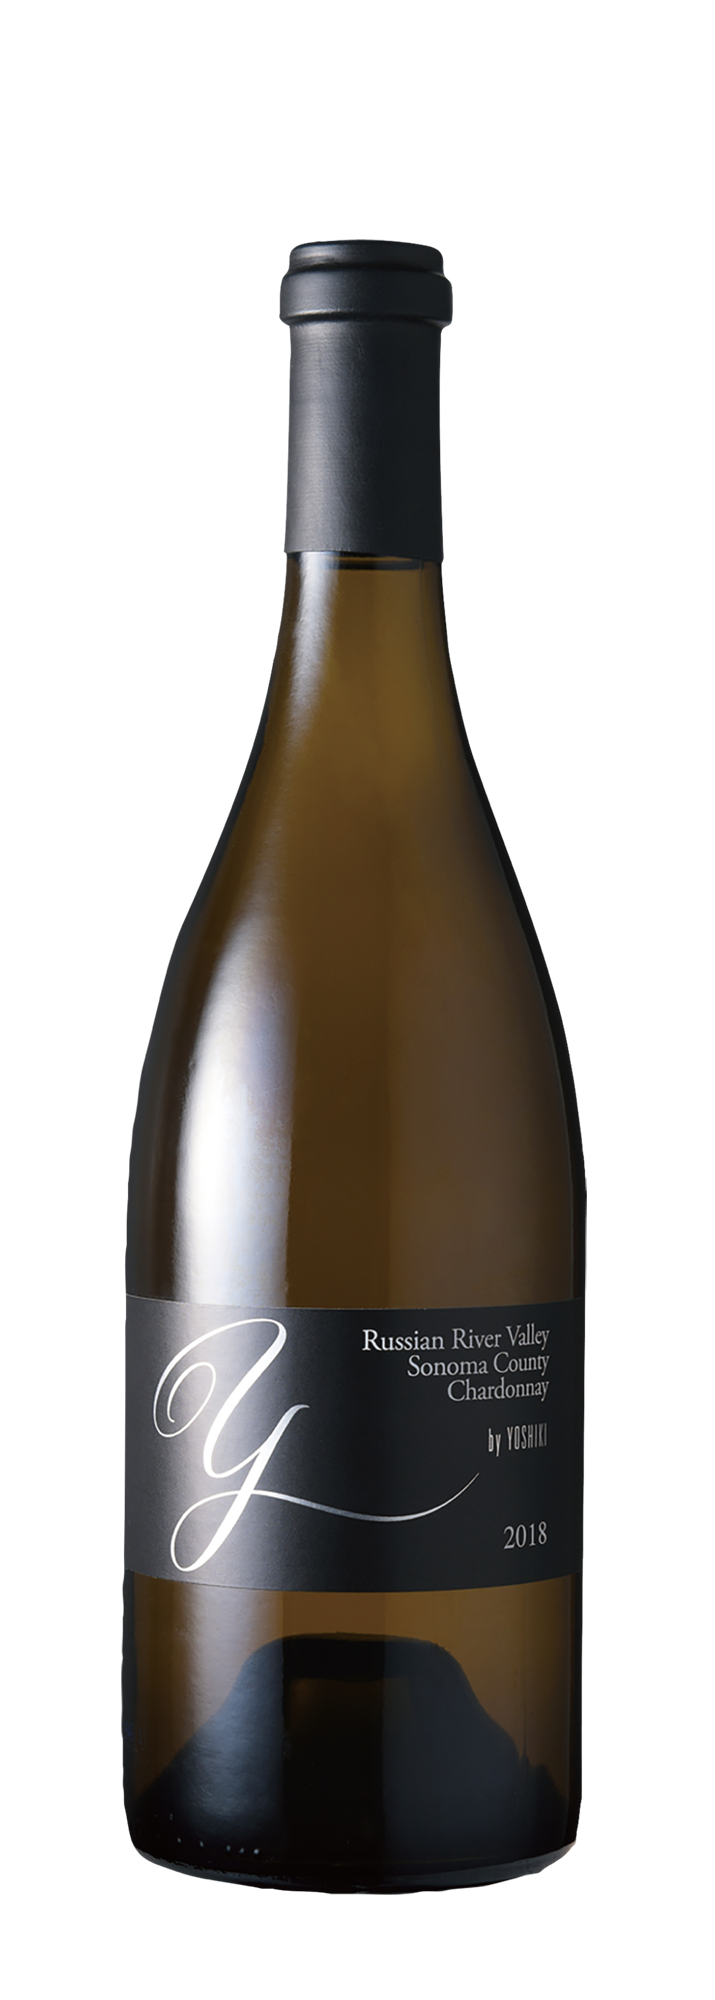 Russian River Valley Chardonnay 2018